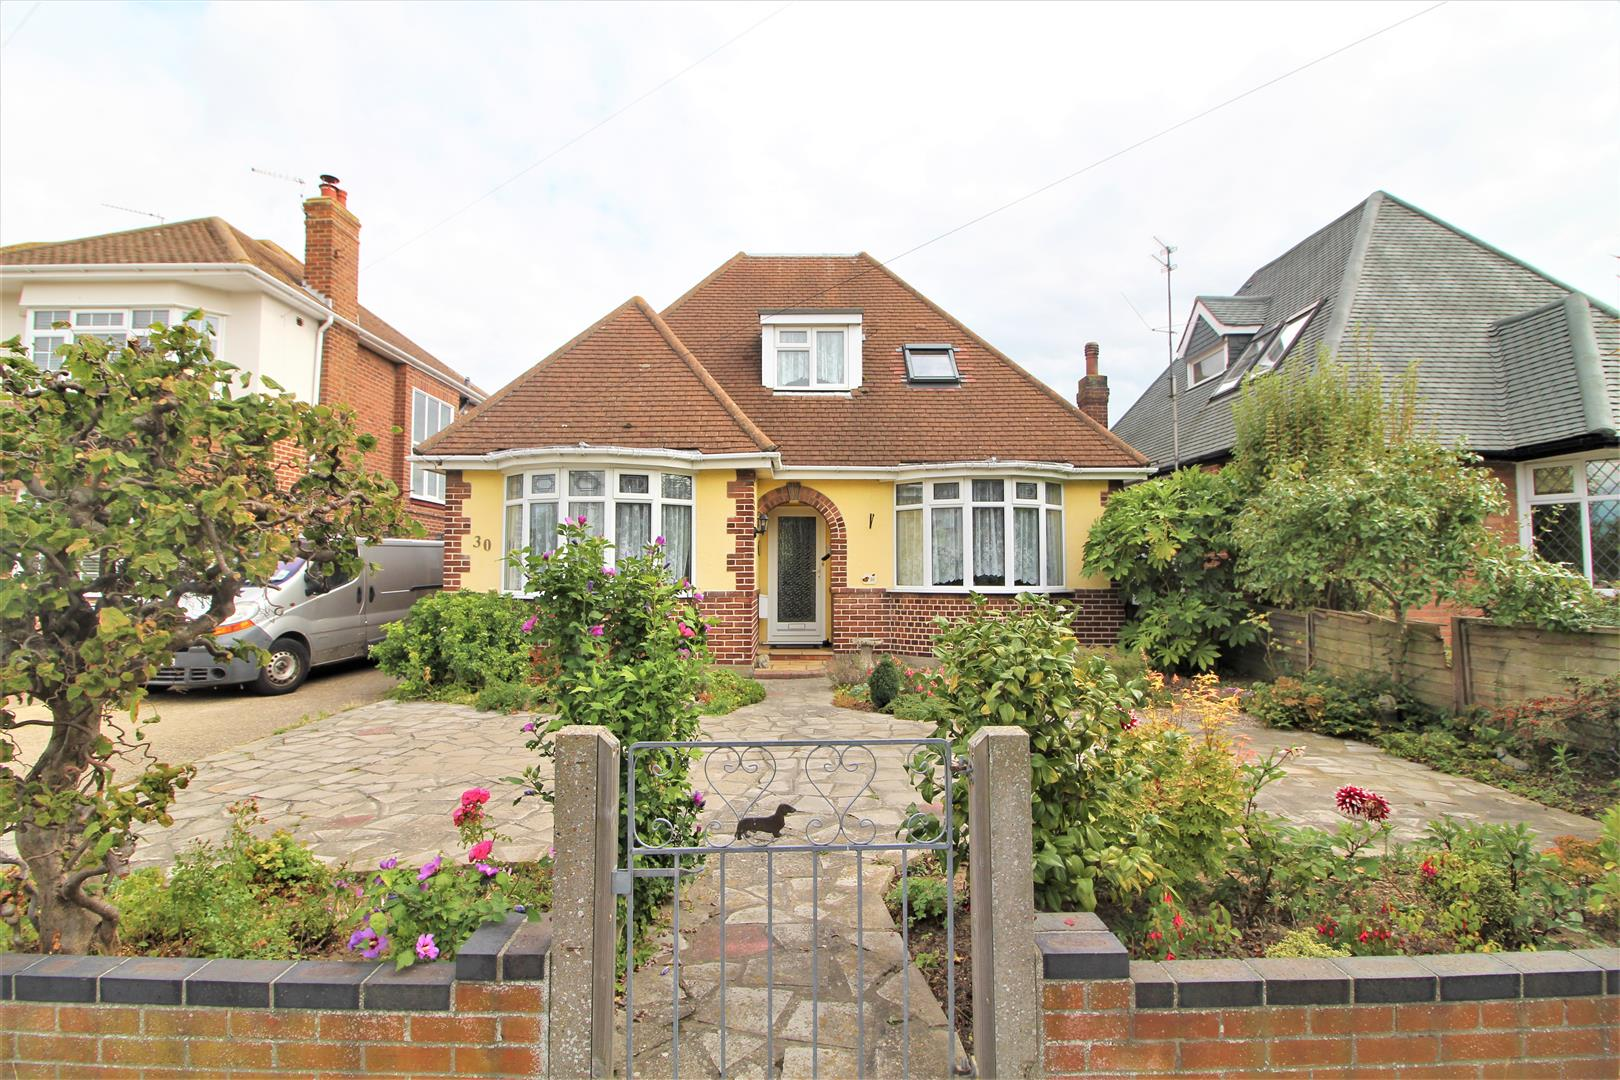 Turpins Avenue, Holland-on-Sea, Essex, CO15 5HE